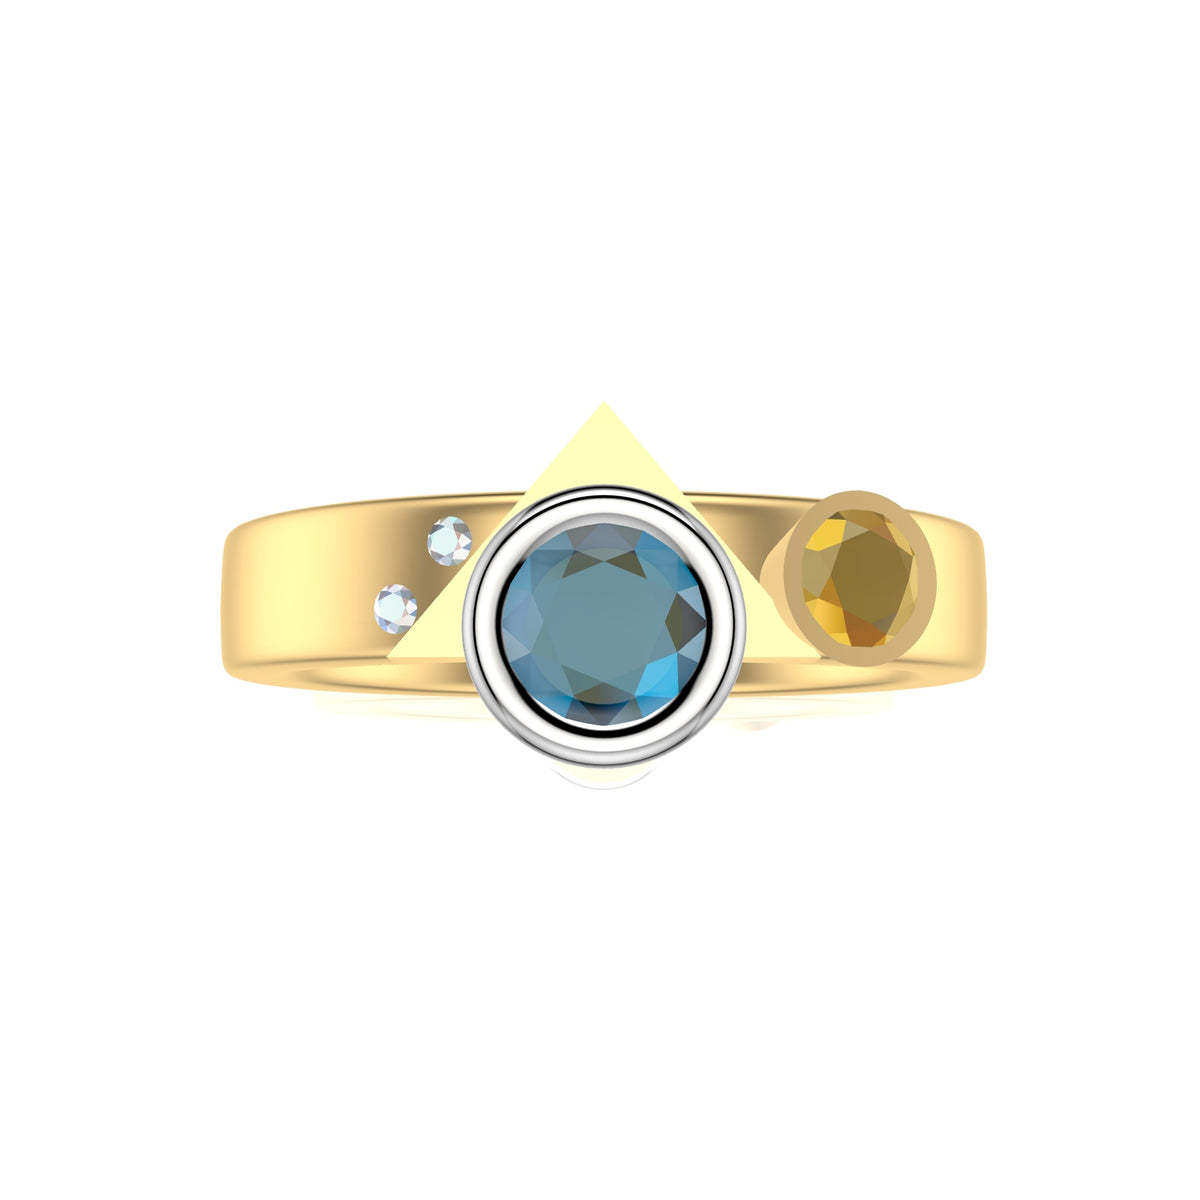 Sea Shore Shaped Stacker Ring | 9ct Yellow And White Gold 4mm Wide Flat Band | With Blue Zircon And Diamond, Tanzanite Or Yellow Sapphire Accent Stone